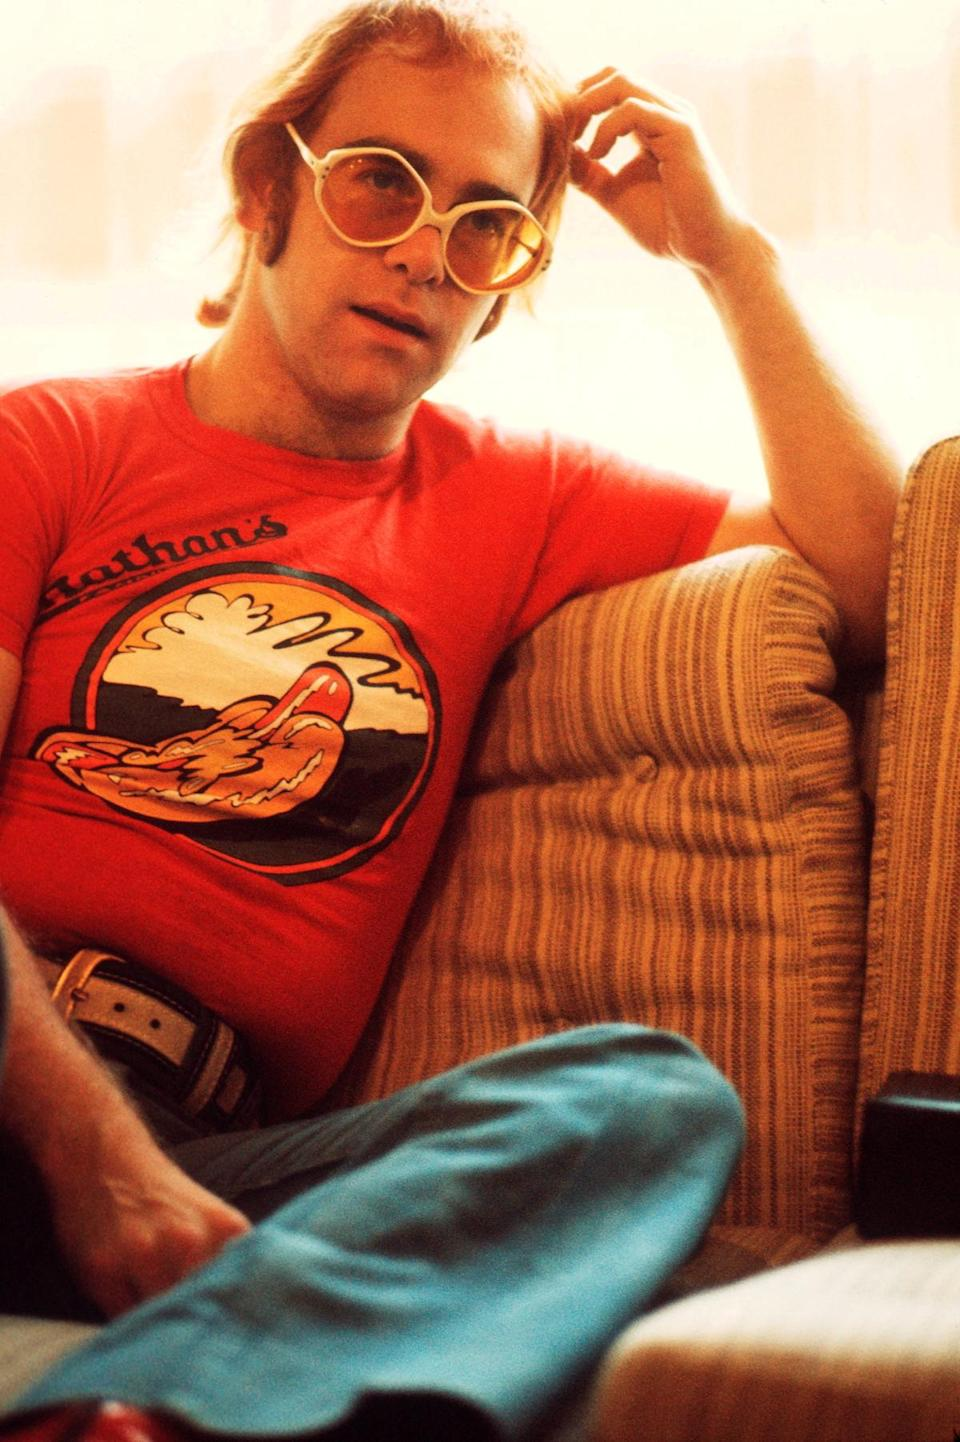 <p>Elton John in a relaxed Nathan's Hot Dog T-shirt and yellow tinted sunglasses in 1974. (Photo: Getty Images) </p>